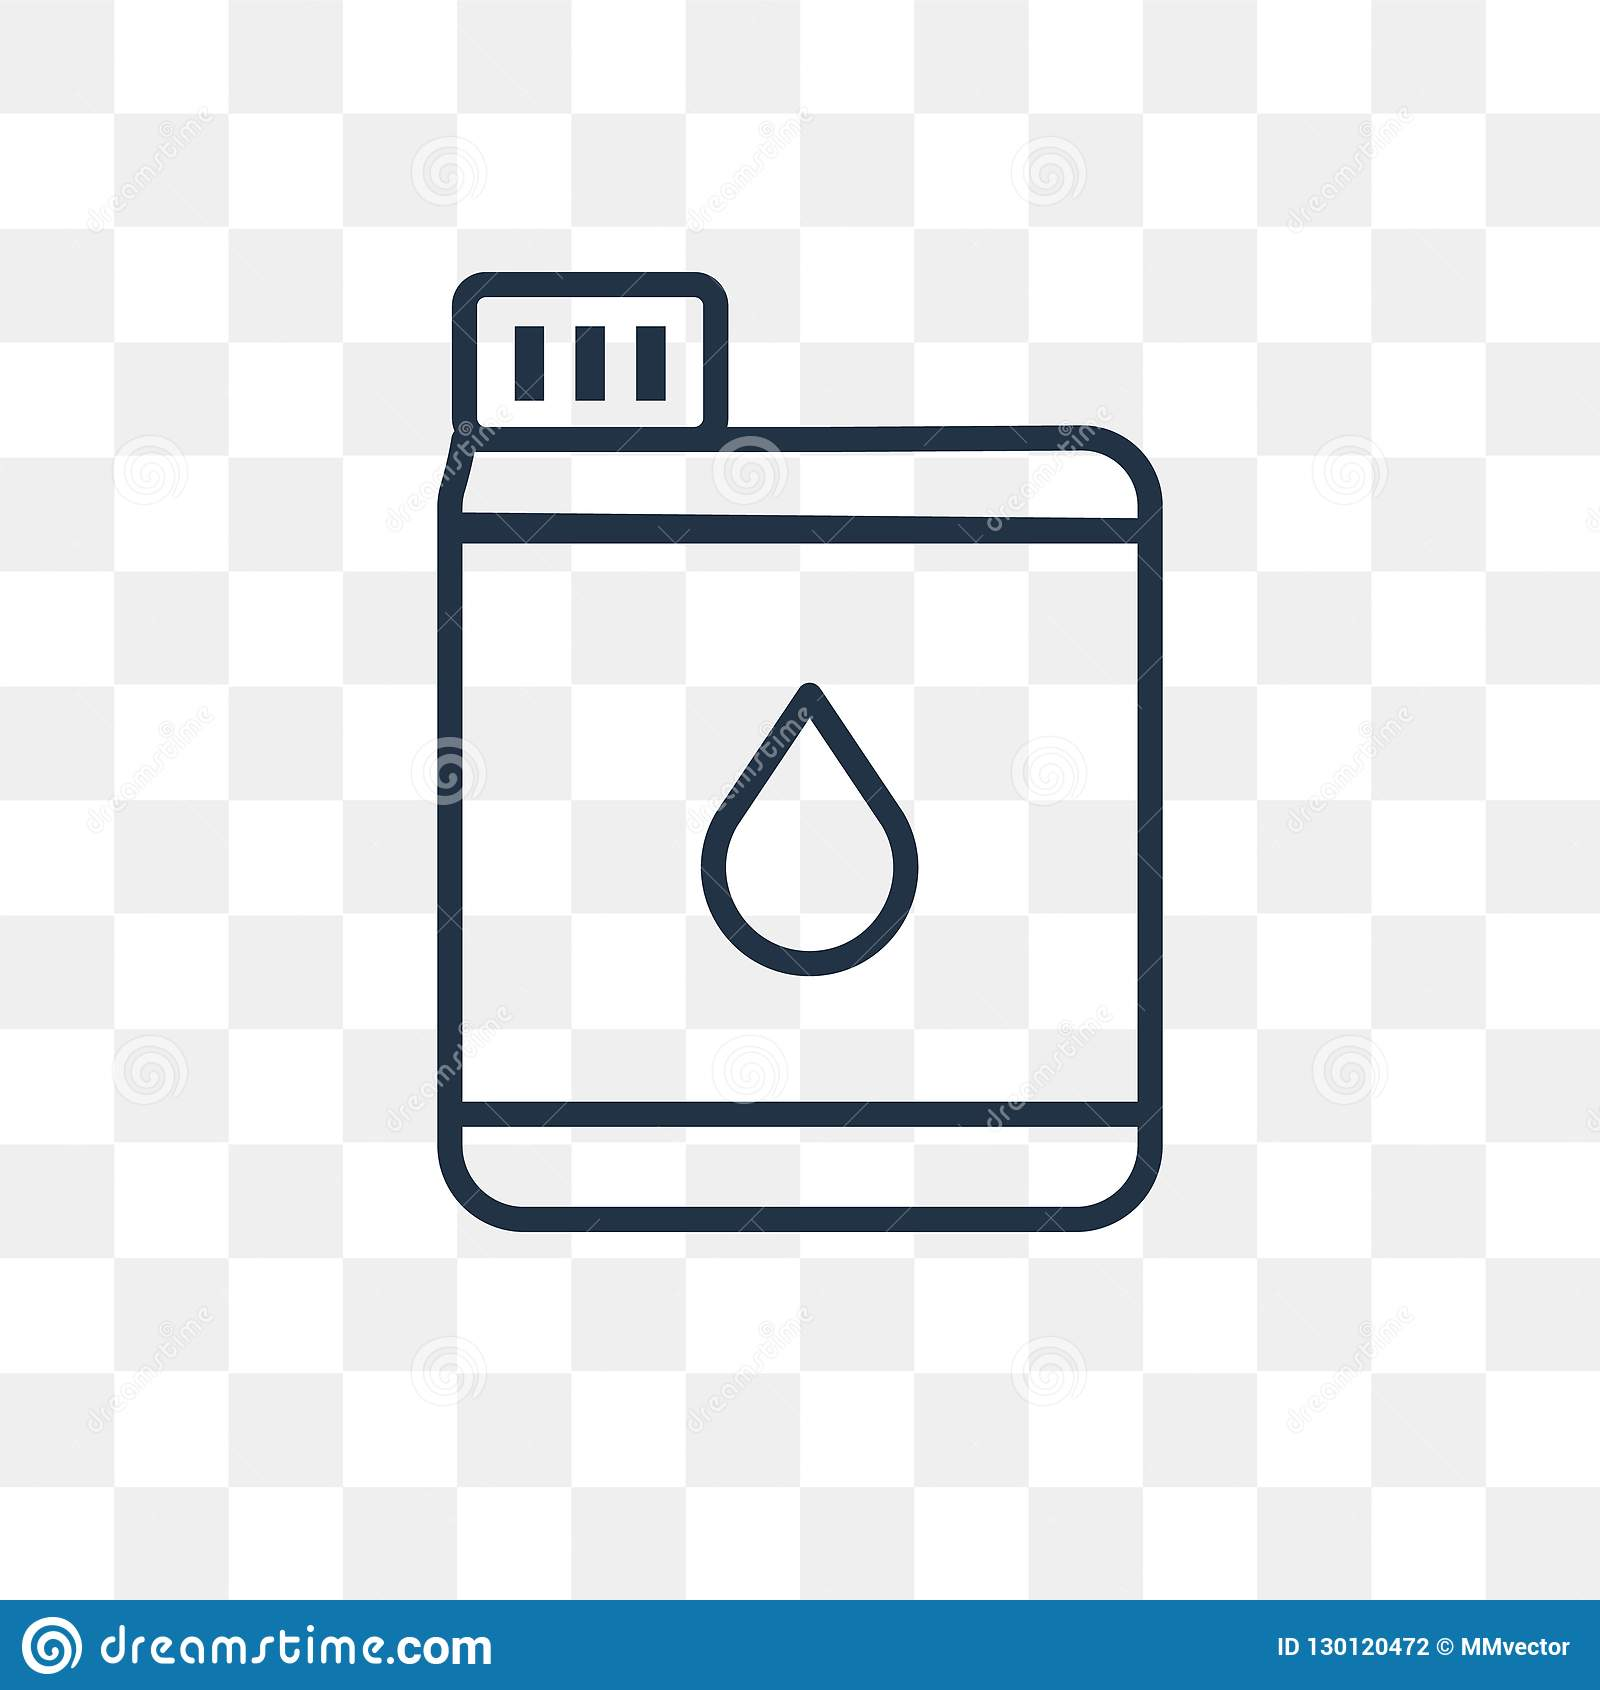 water tank for vehicles vector icon isolated on transparent back stock vector illustration of industry water 130120472 https www dreamstime com water tank vehicles vector icon isolated transparent back outline background high quality linear transparency concept can image130120472